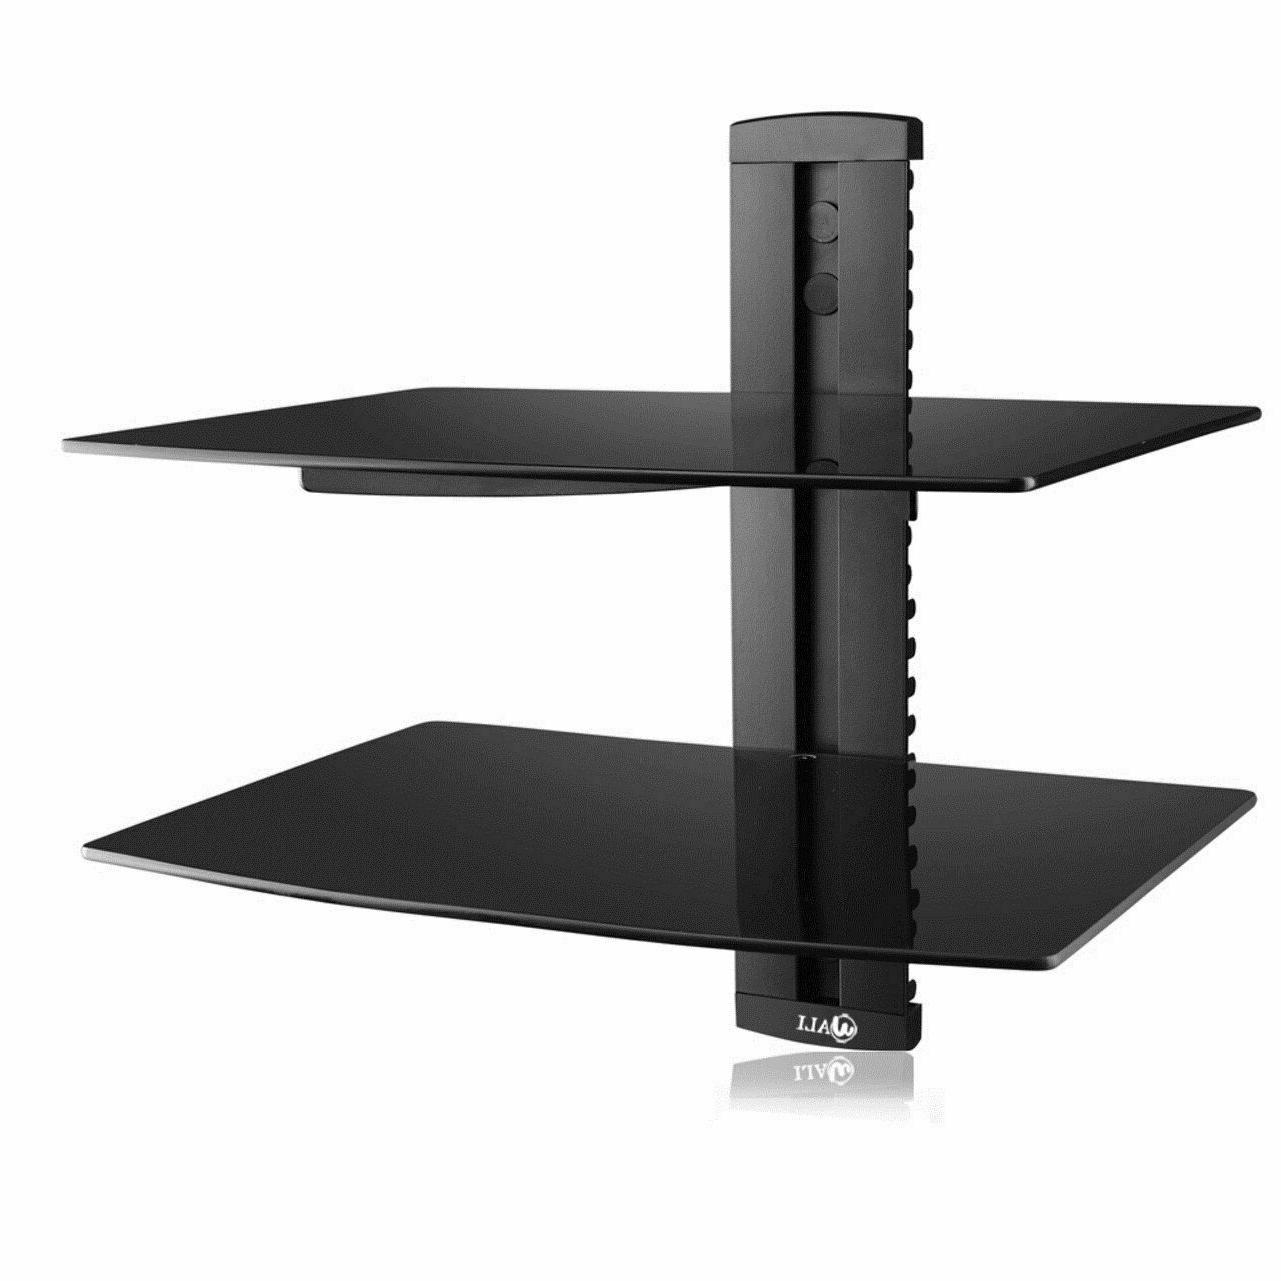 dvd wall mount with strengthened tempered glass